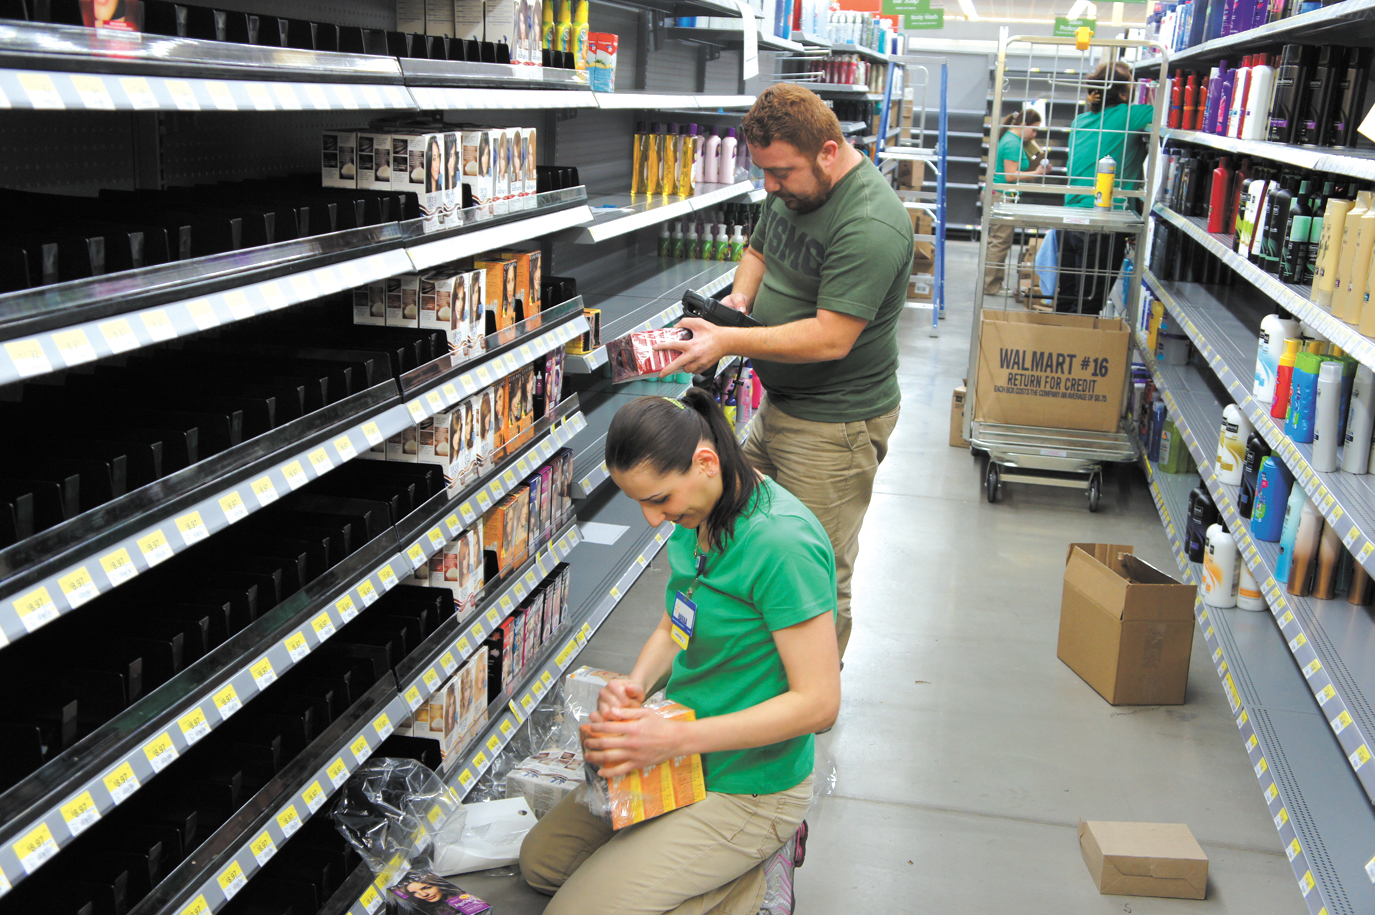 Walmart Neighborhood Market employees, including Hanaa Qiryaquos (left) and Salwin Korkies, stock the shelves in the hair care/beauty section in advance of the store's grand opening in Sunnyslope, set for June 11 (photo by Teri Carnicelli).